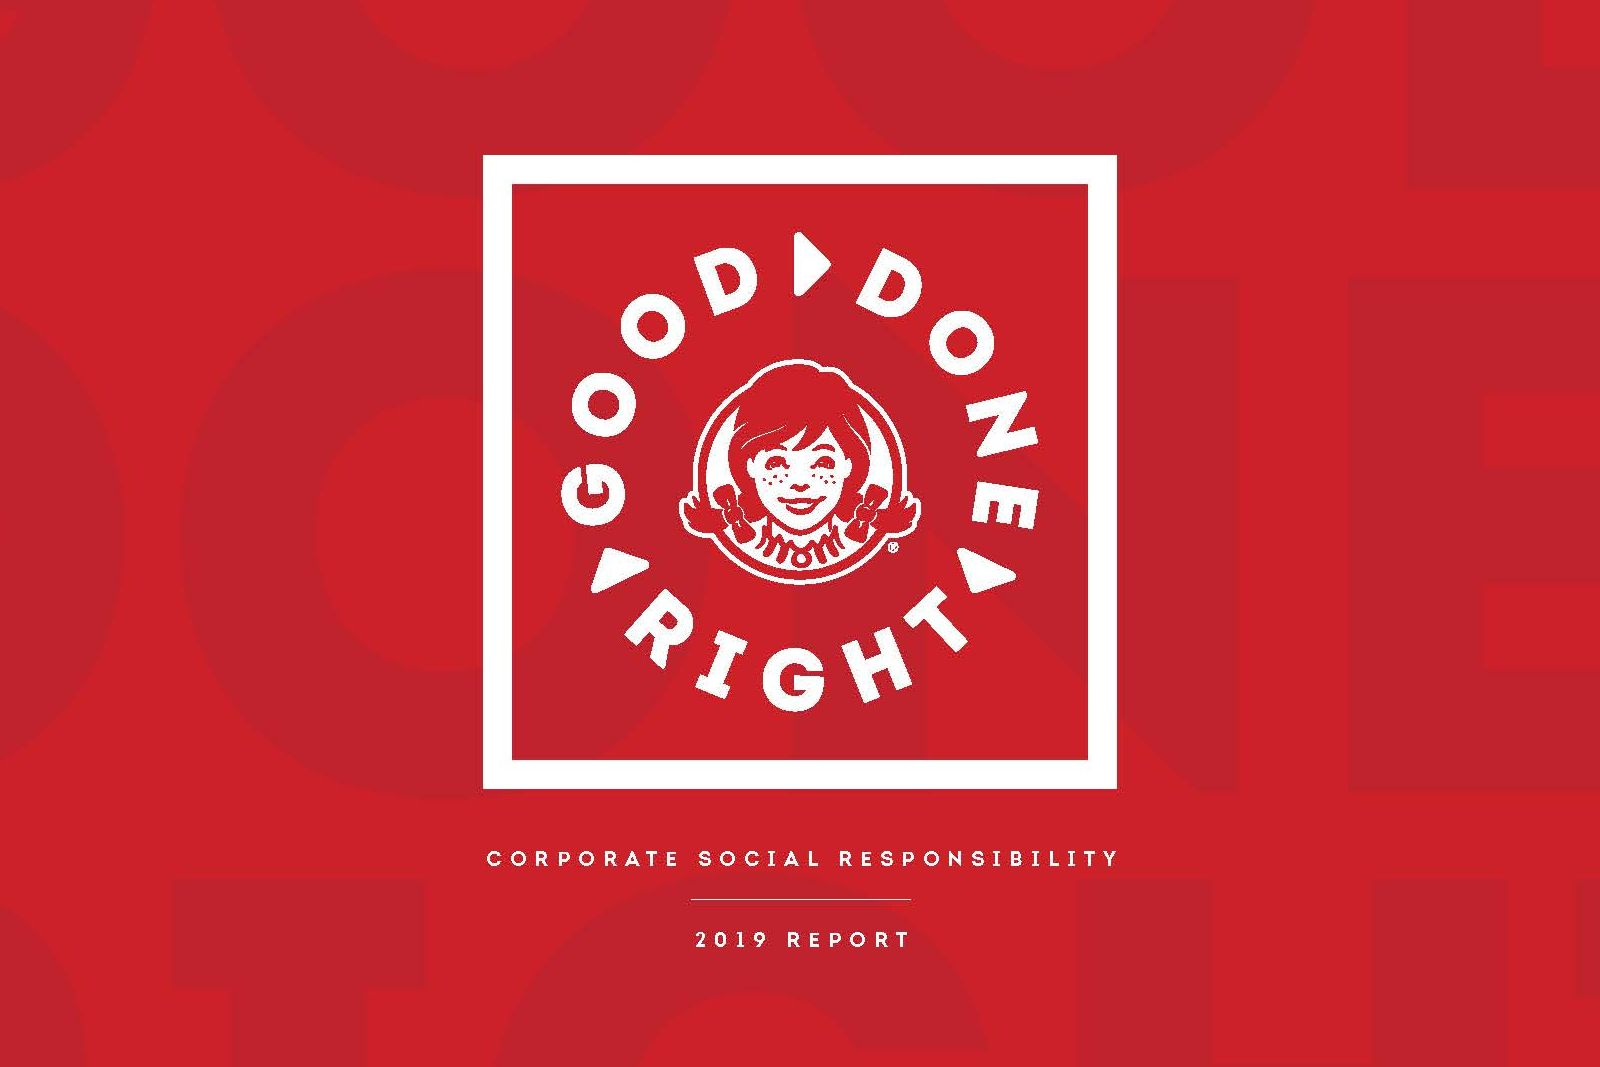 The Wendy's Company launches its 2019 Corporate Social Responsibility report; Announces implementation of new Animal Care Standards Program in 2020